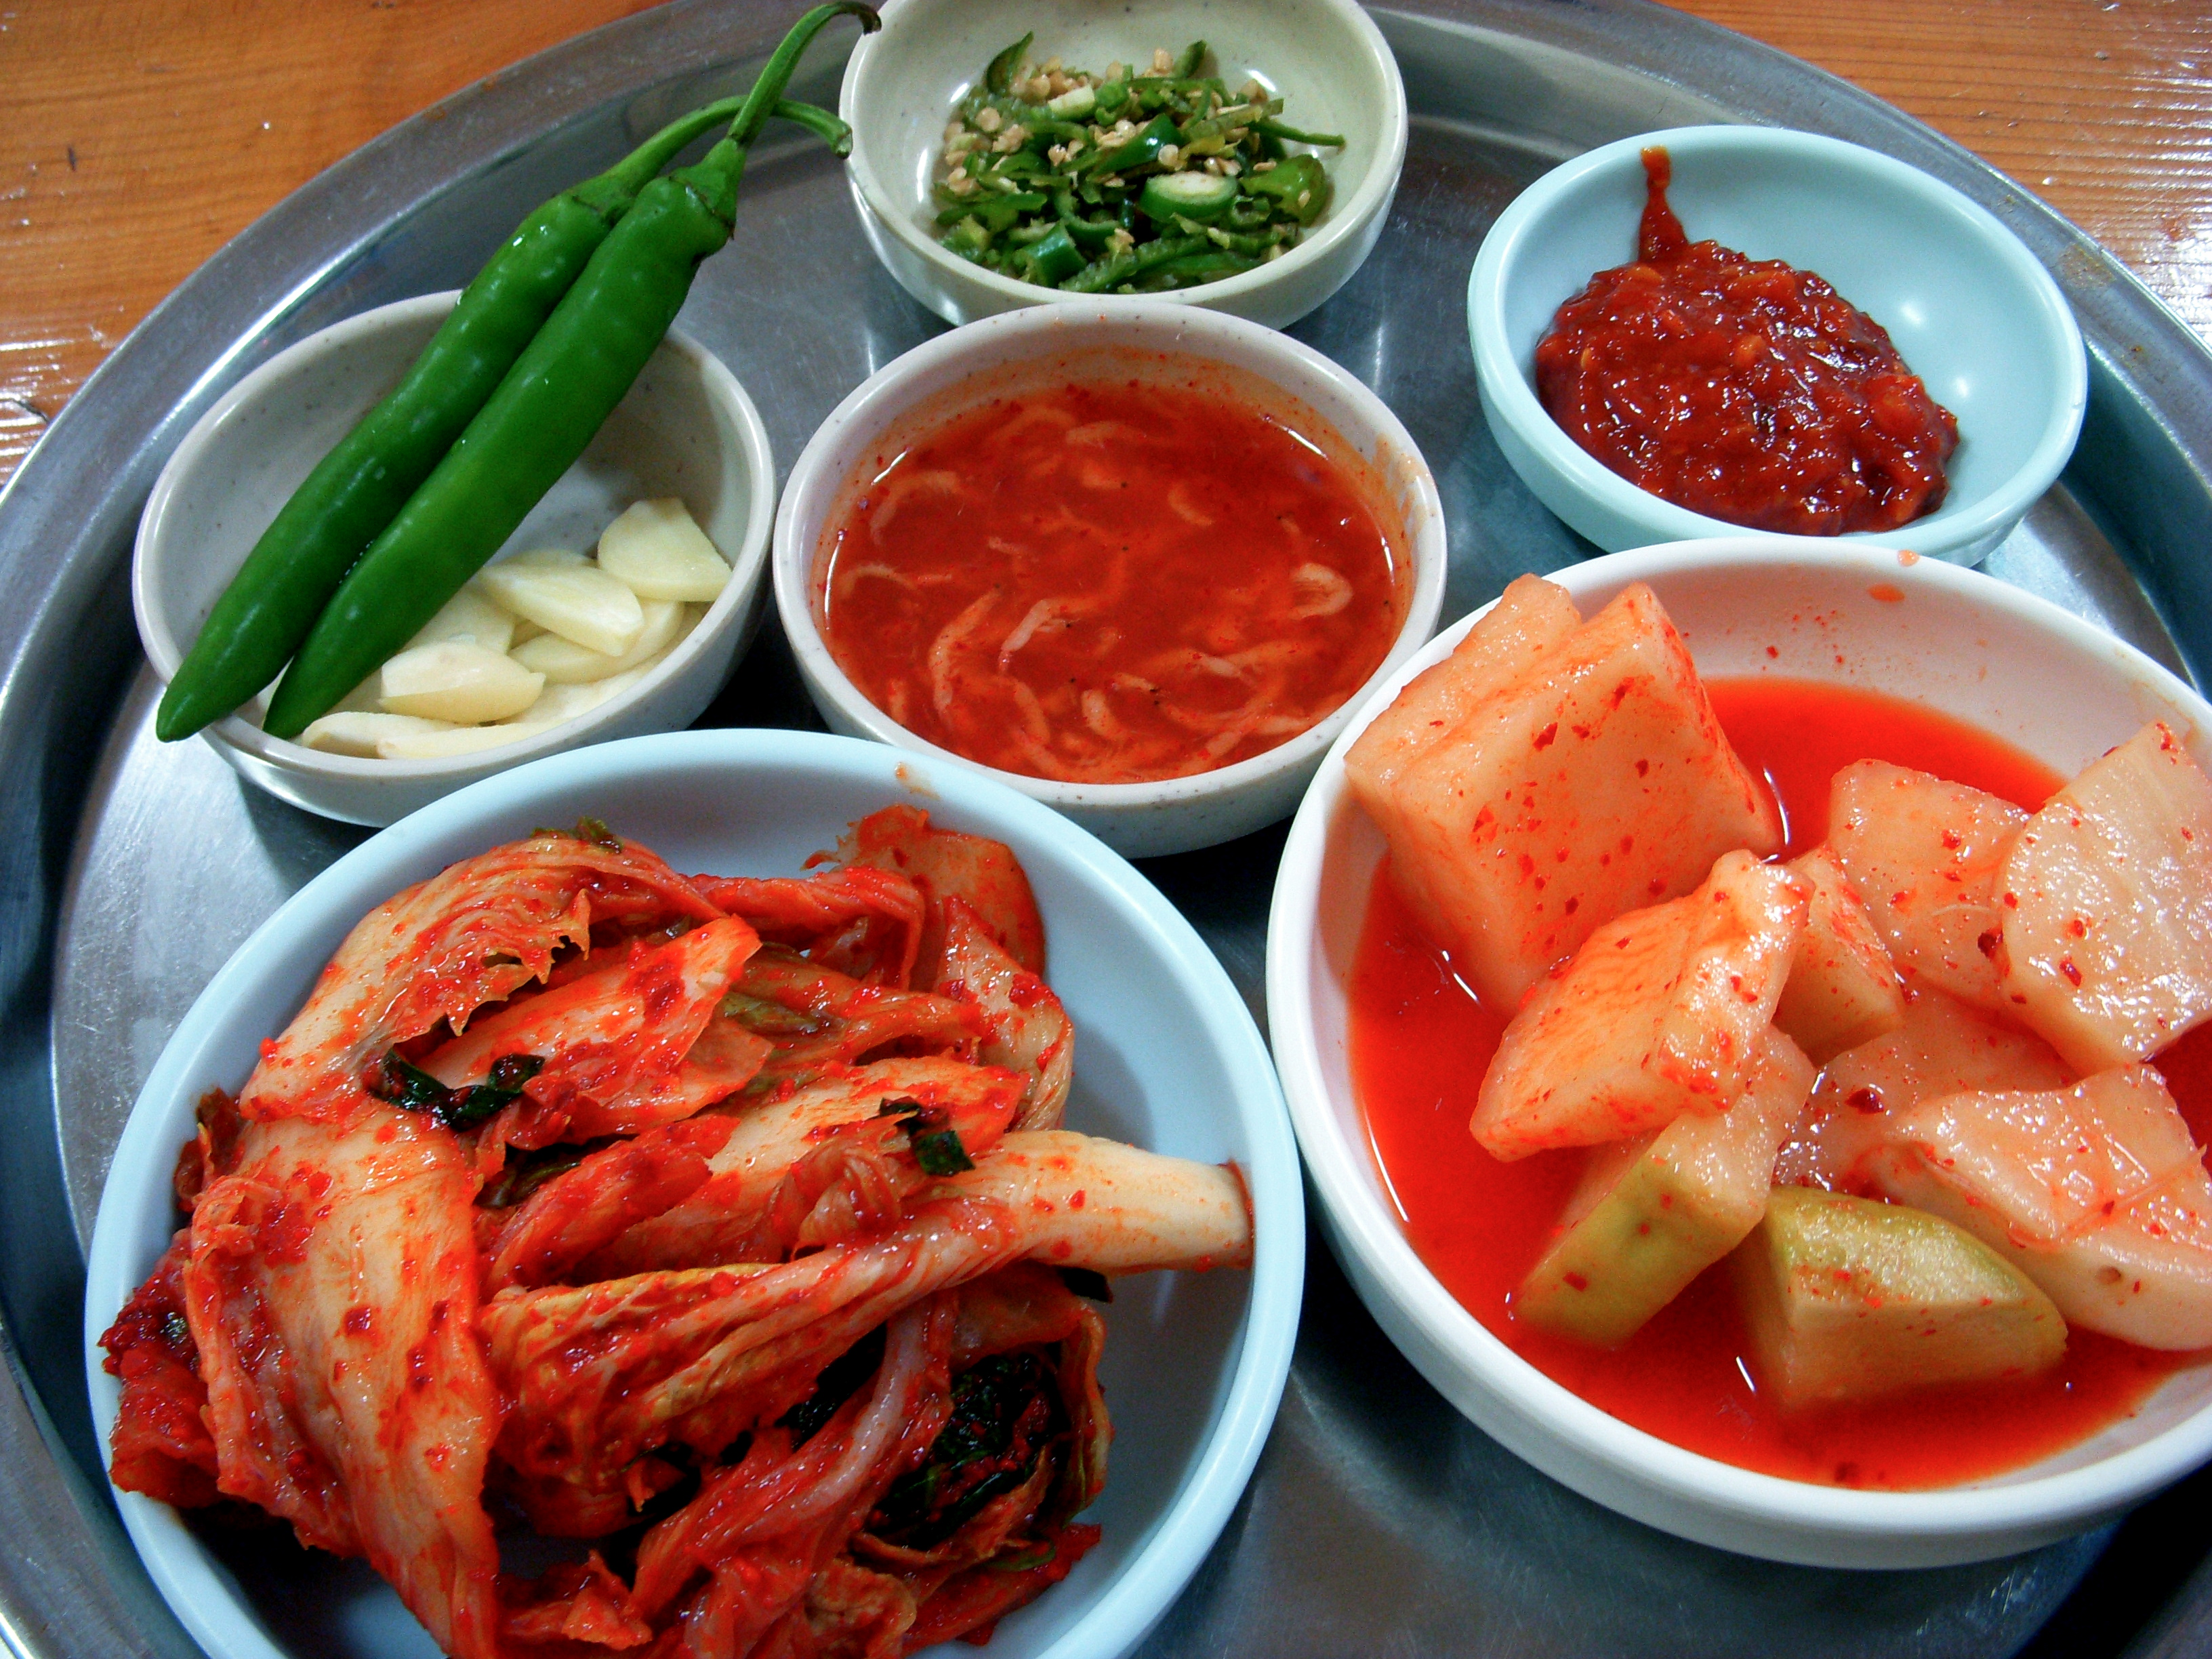 Cancer fighting kimchi developed be korea savvy kimchi has vitamins a b and c but its biggest benefit may be forumfinder Image collections